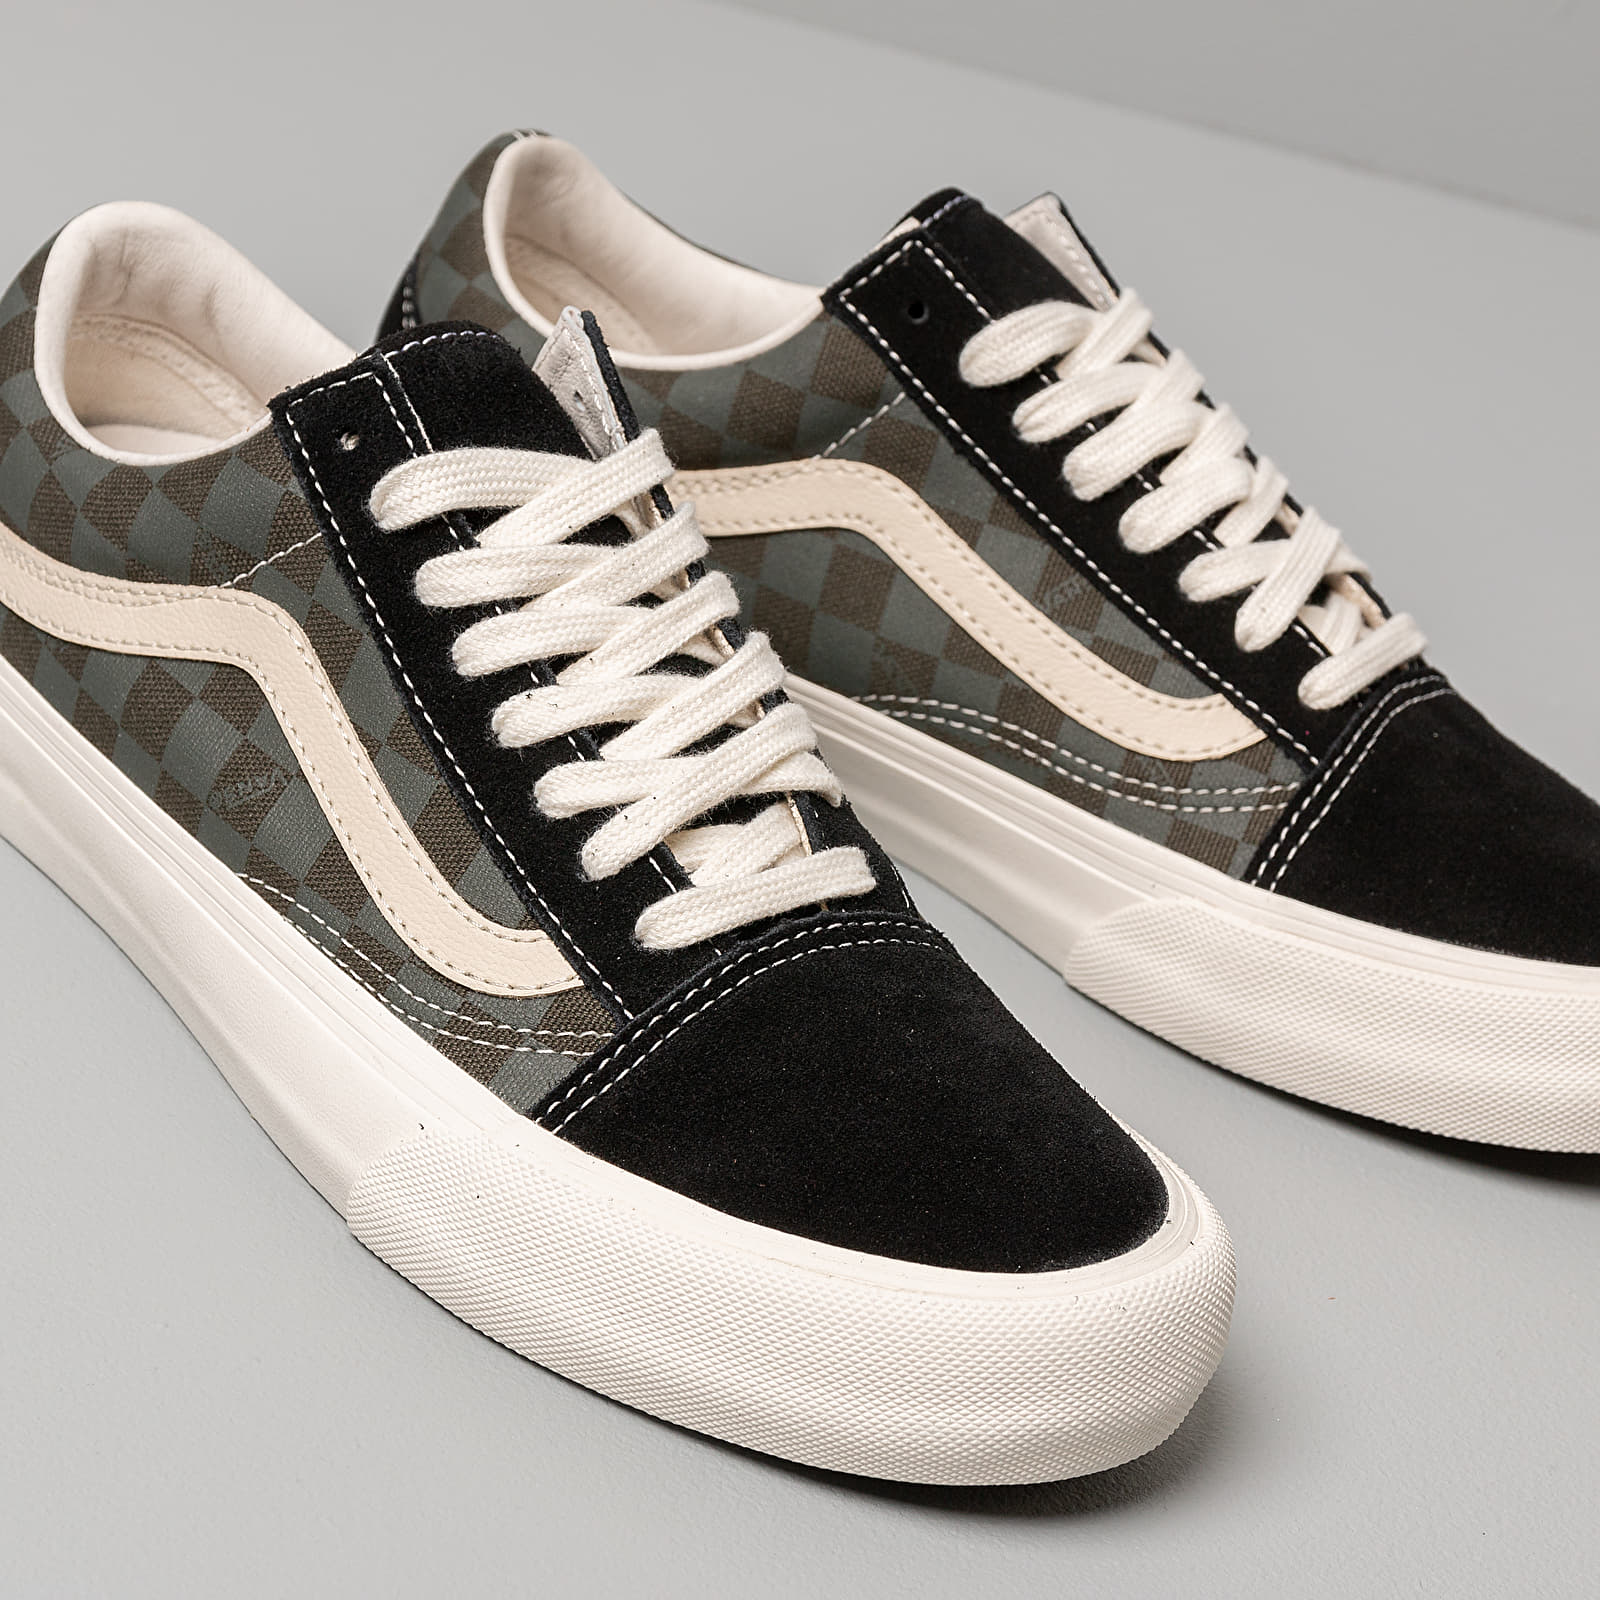 Vans Old Skool VLT LX (VSSL Skate Kit) Forest Night Black Ink | Footshop